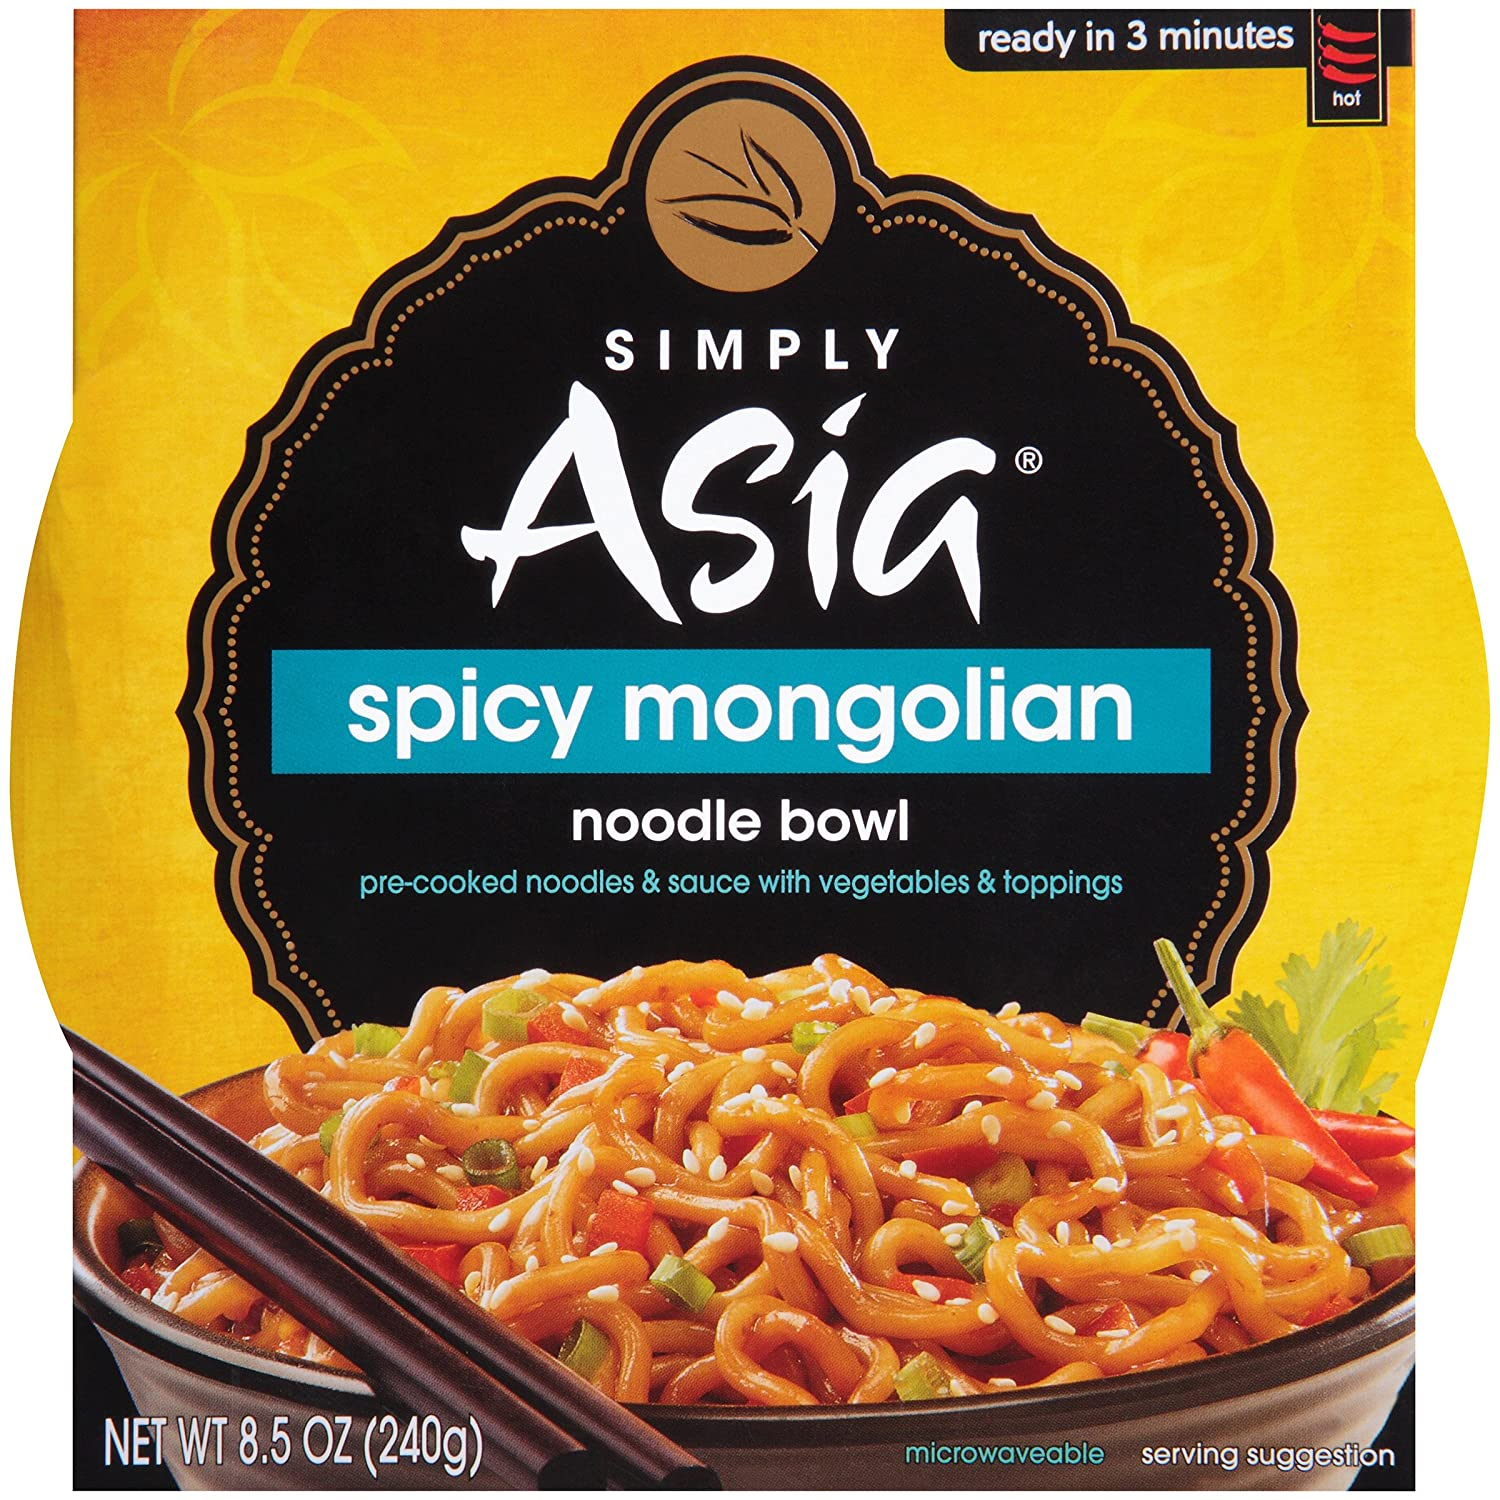 Simply Asia Spicy Mongolian Noodle Bowl, 8.5 Ounce